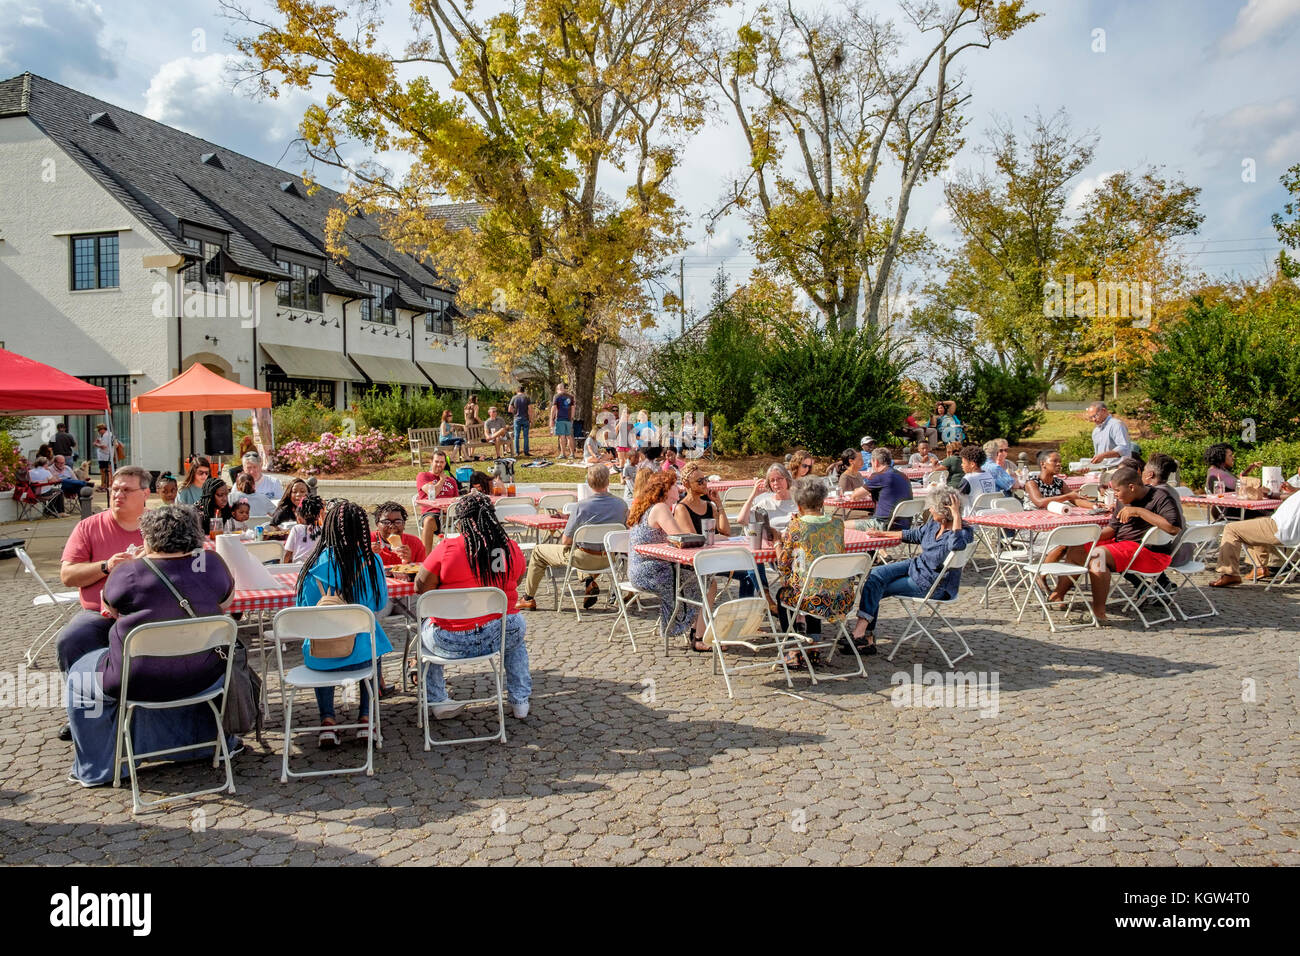 People,friends and neighbors, sitting enjoying a local food truck festival, eating their food and enjoying the lifestyle - Stock Image